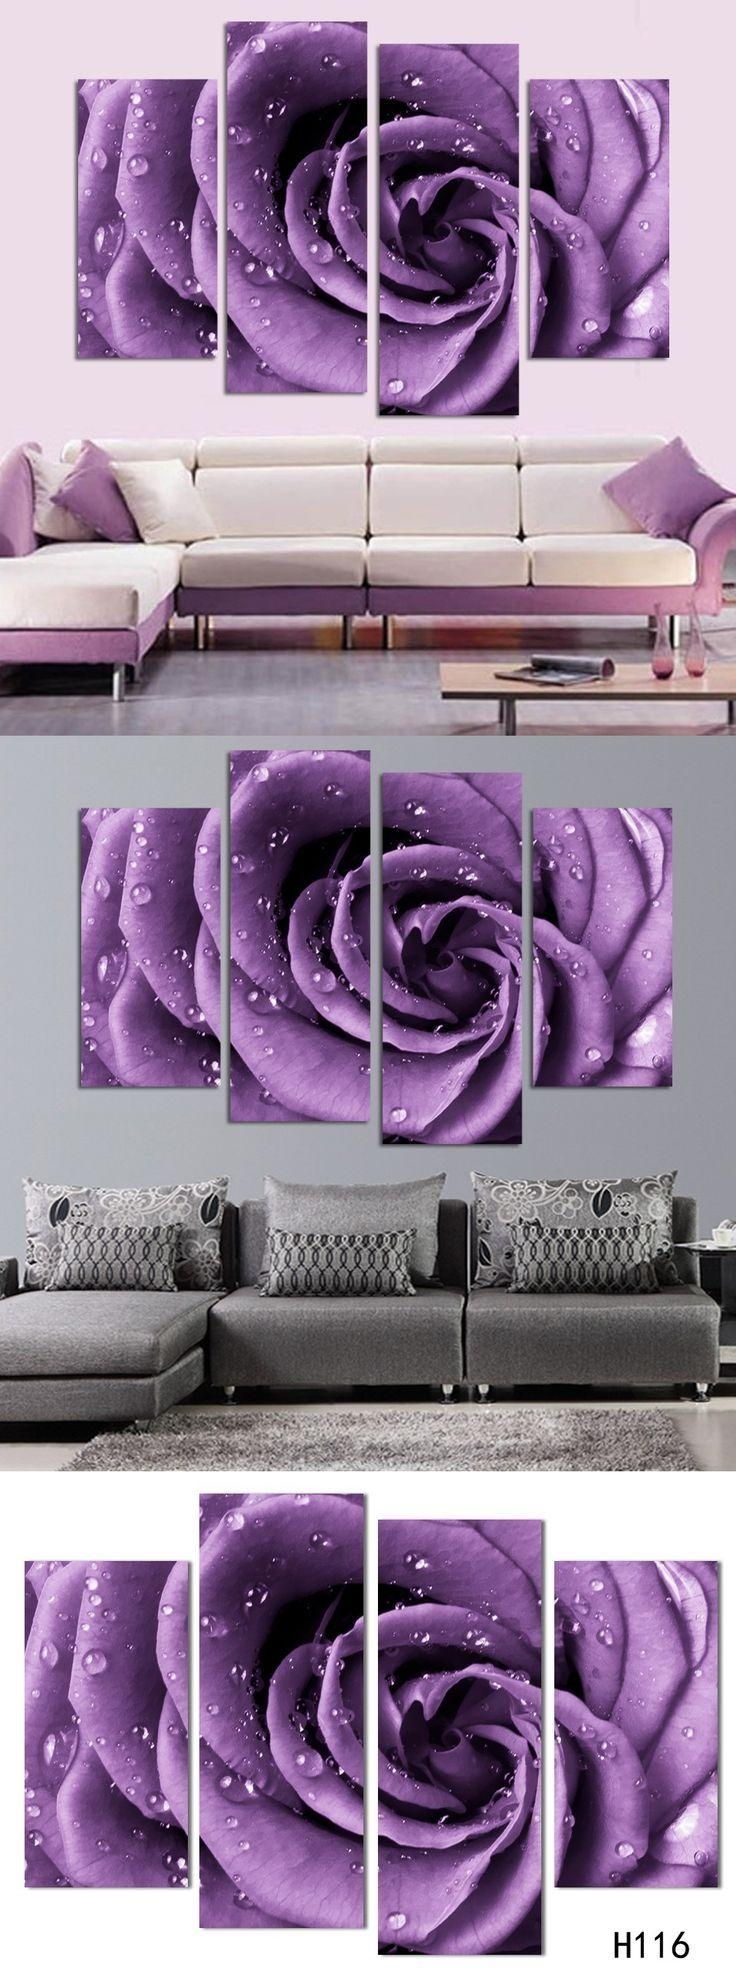 Best 25+ 3 Piece Wall Art Ideas On Pinterest | 3 Piece Art, Diy With 3 Piece Floral Canvas Wall Art (Image 7 of 20)